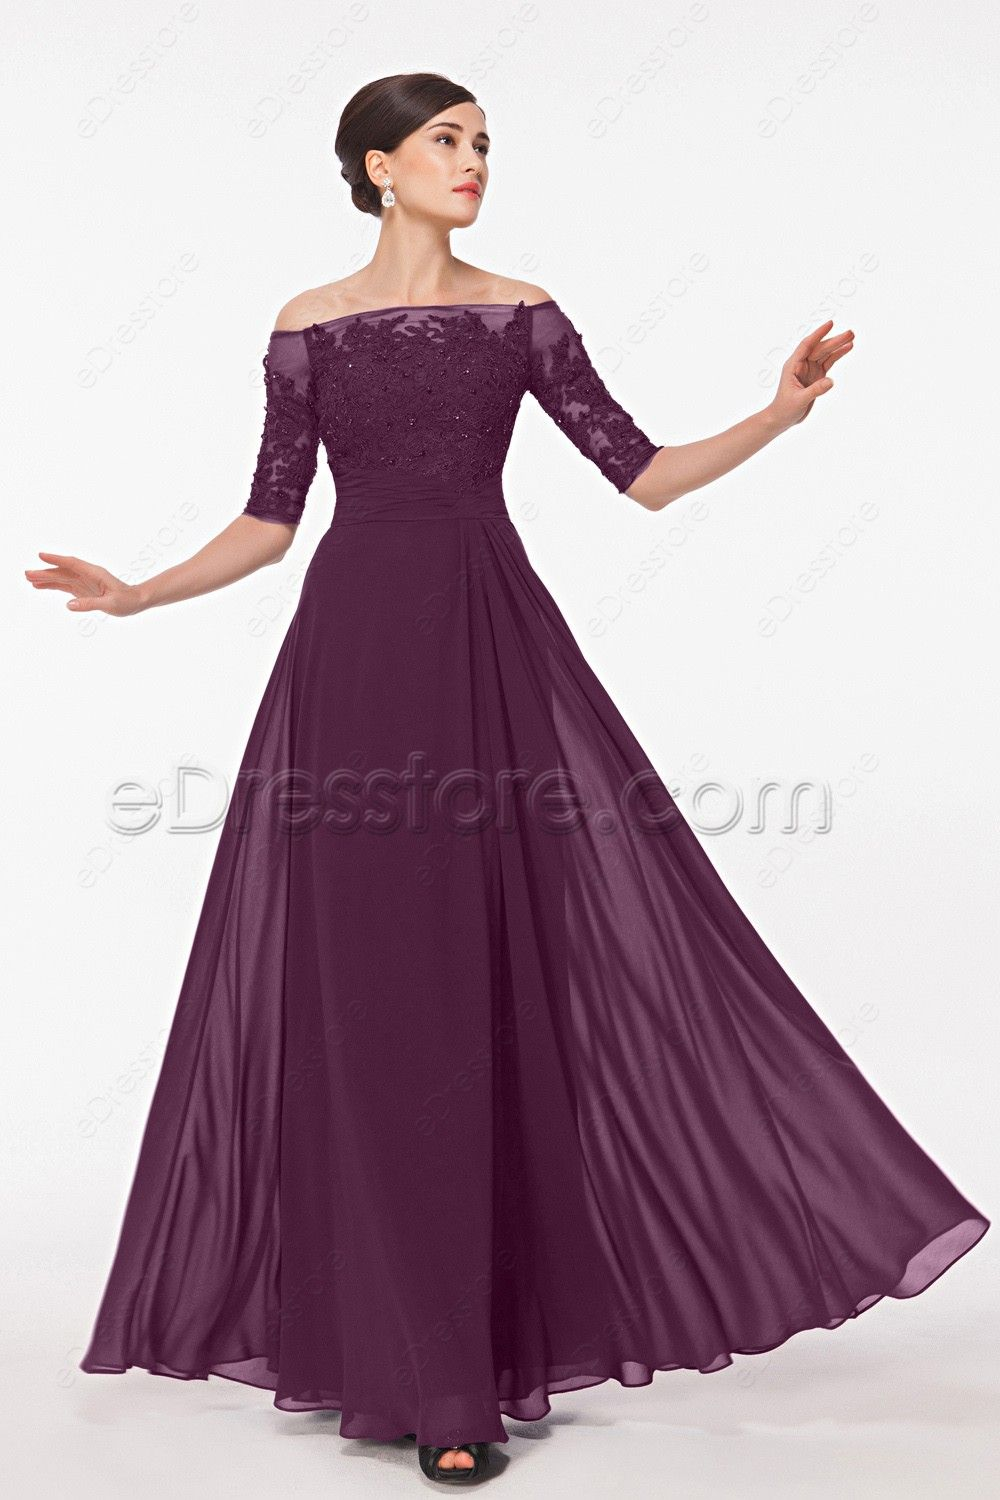 a511d6b28d3b2 The eggplant mother of the bride dress features off the shoulder neckline